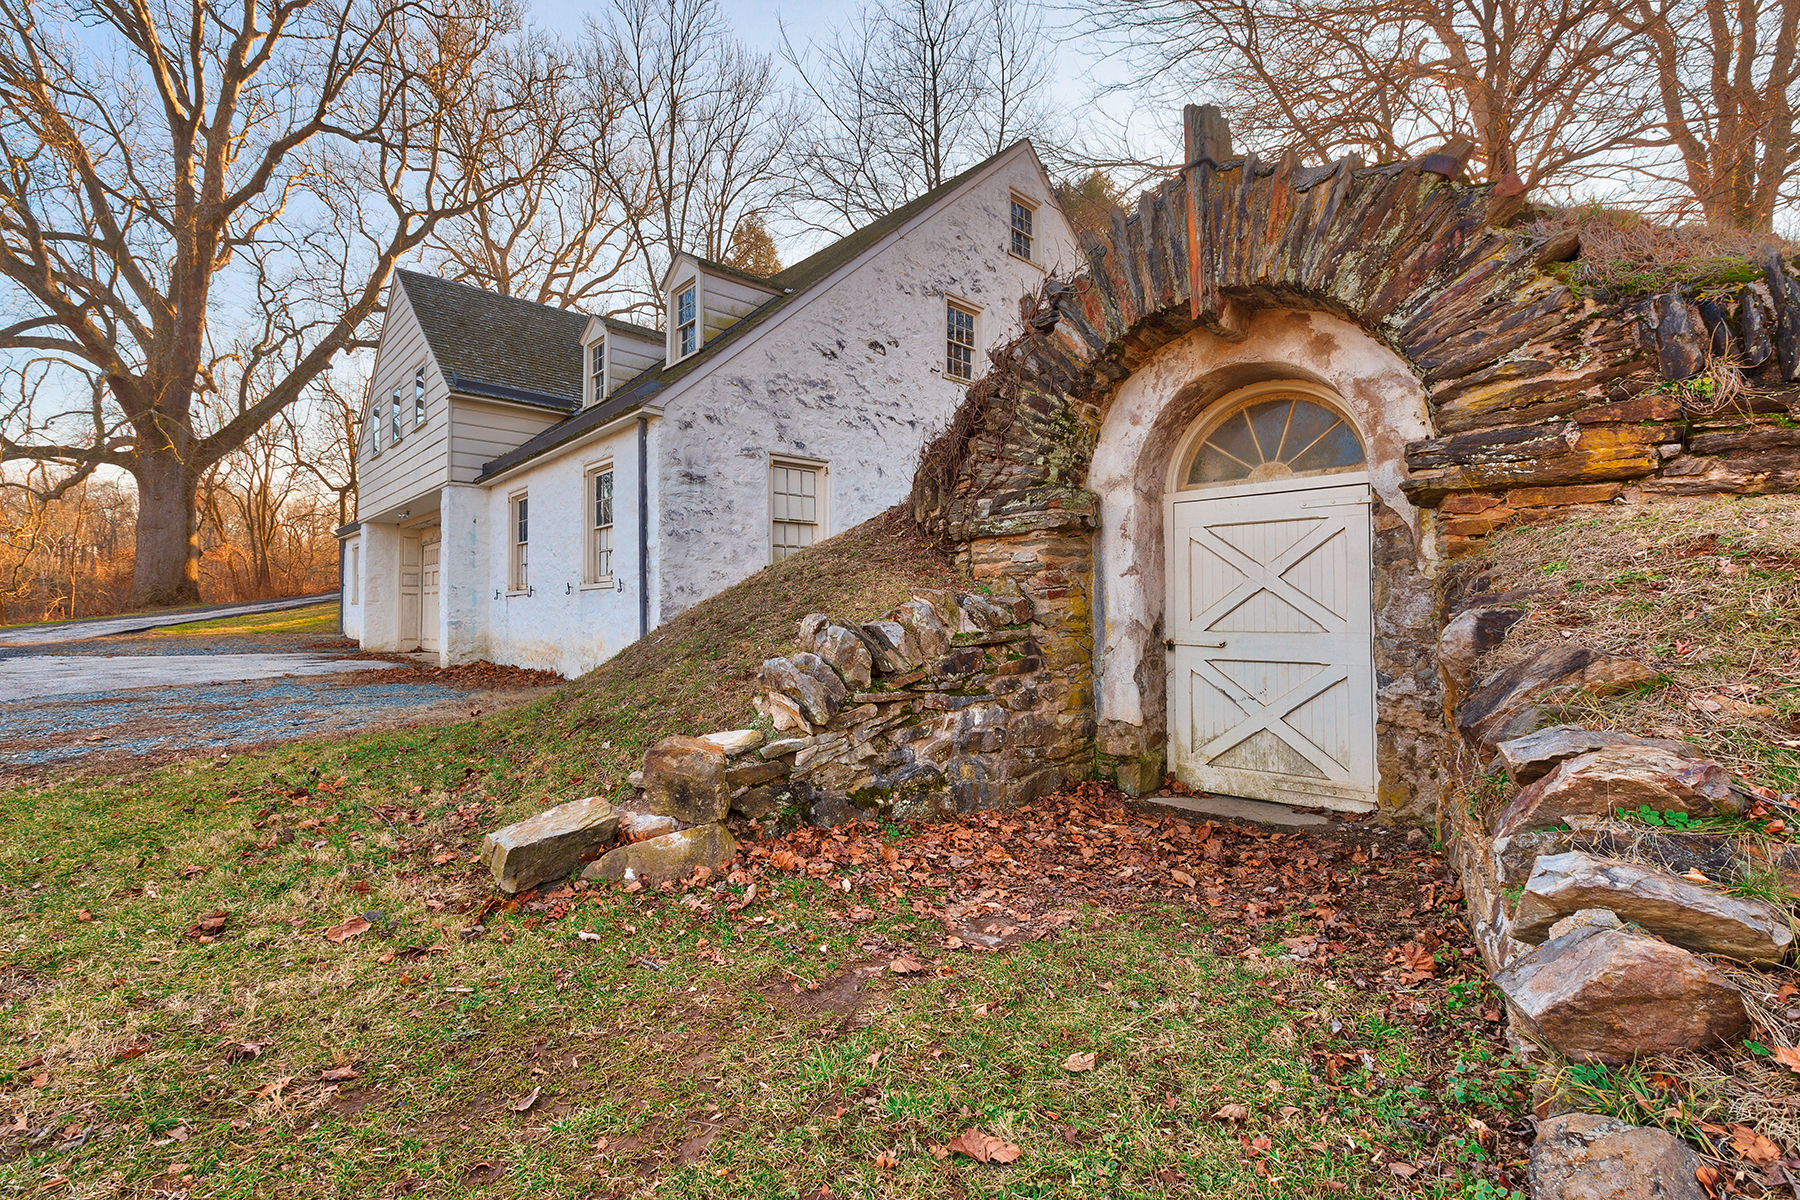 Rustic valley forge architecture - hdr photo